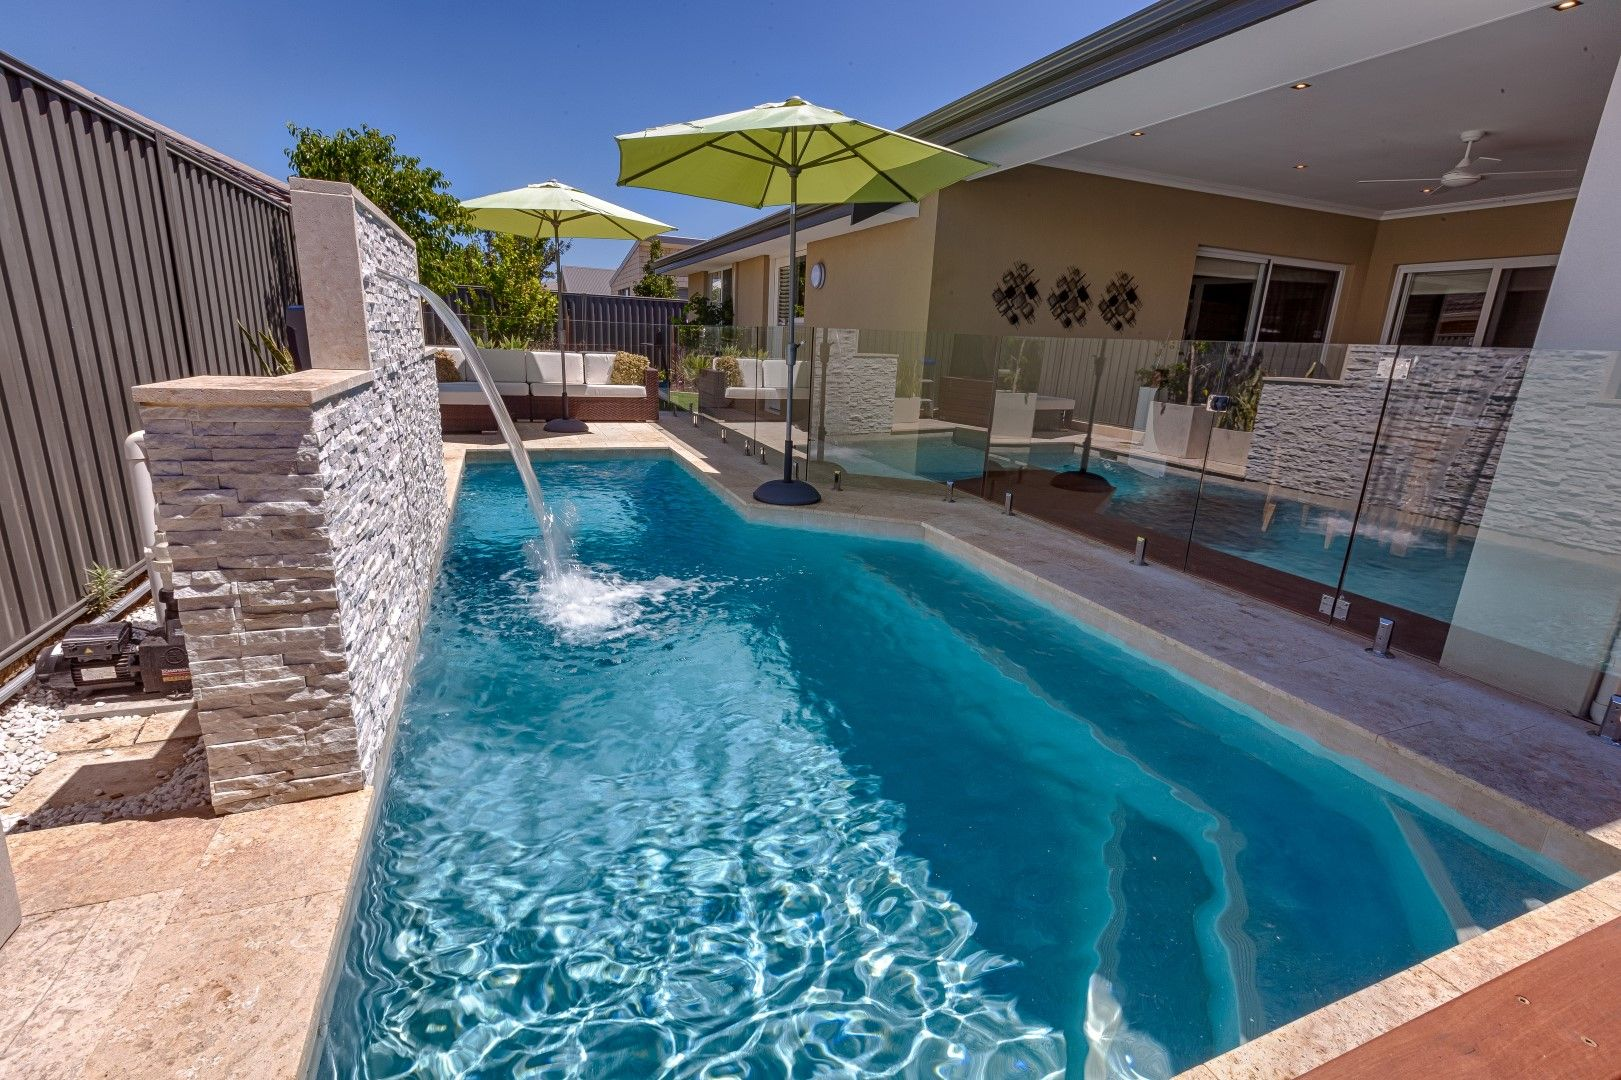 Photo Gallery Best Swimming Pools Freedom Pools Dream Pool Indoor Swimming Pools Concrete Swimming Pool